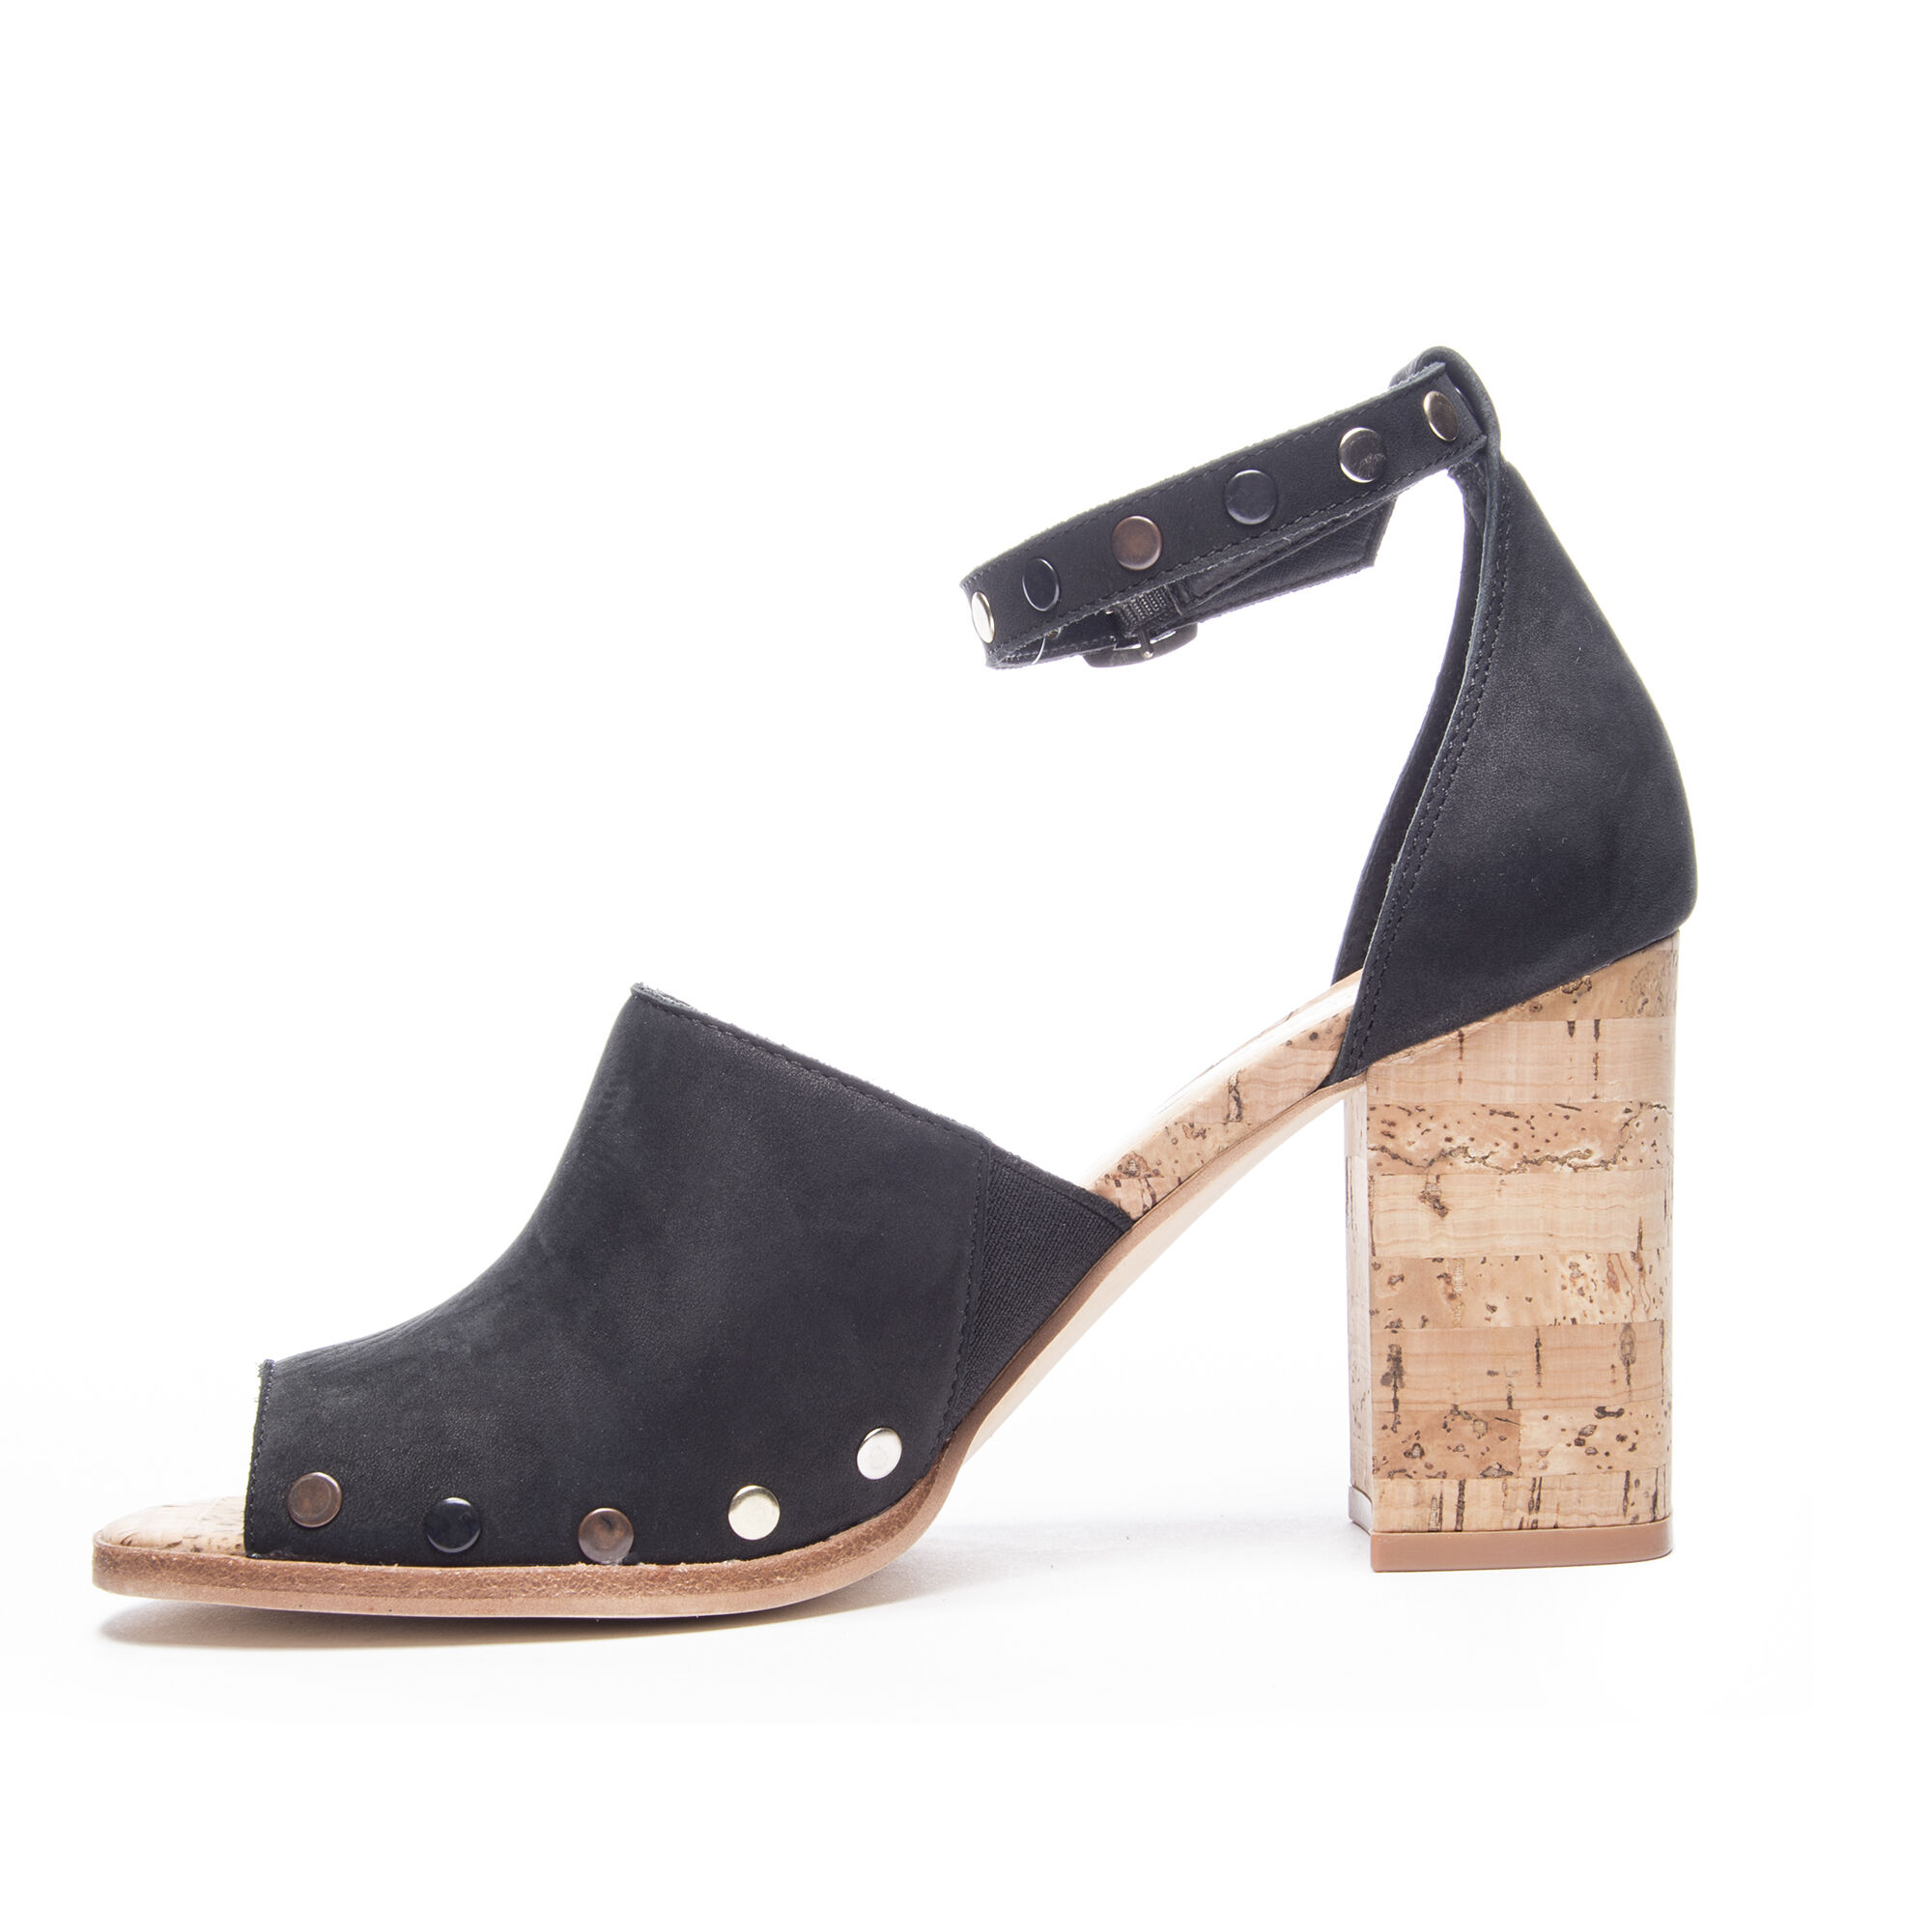 f12ba6a2fc1 Savana Cork Heel Leather Ankle Sandal